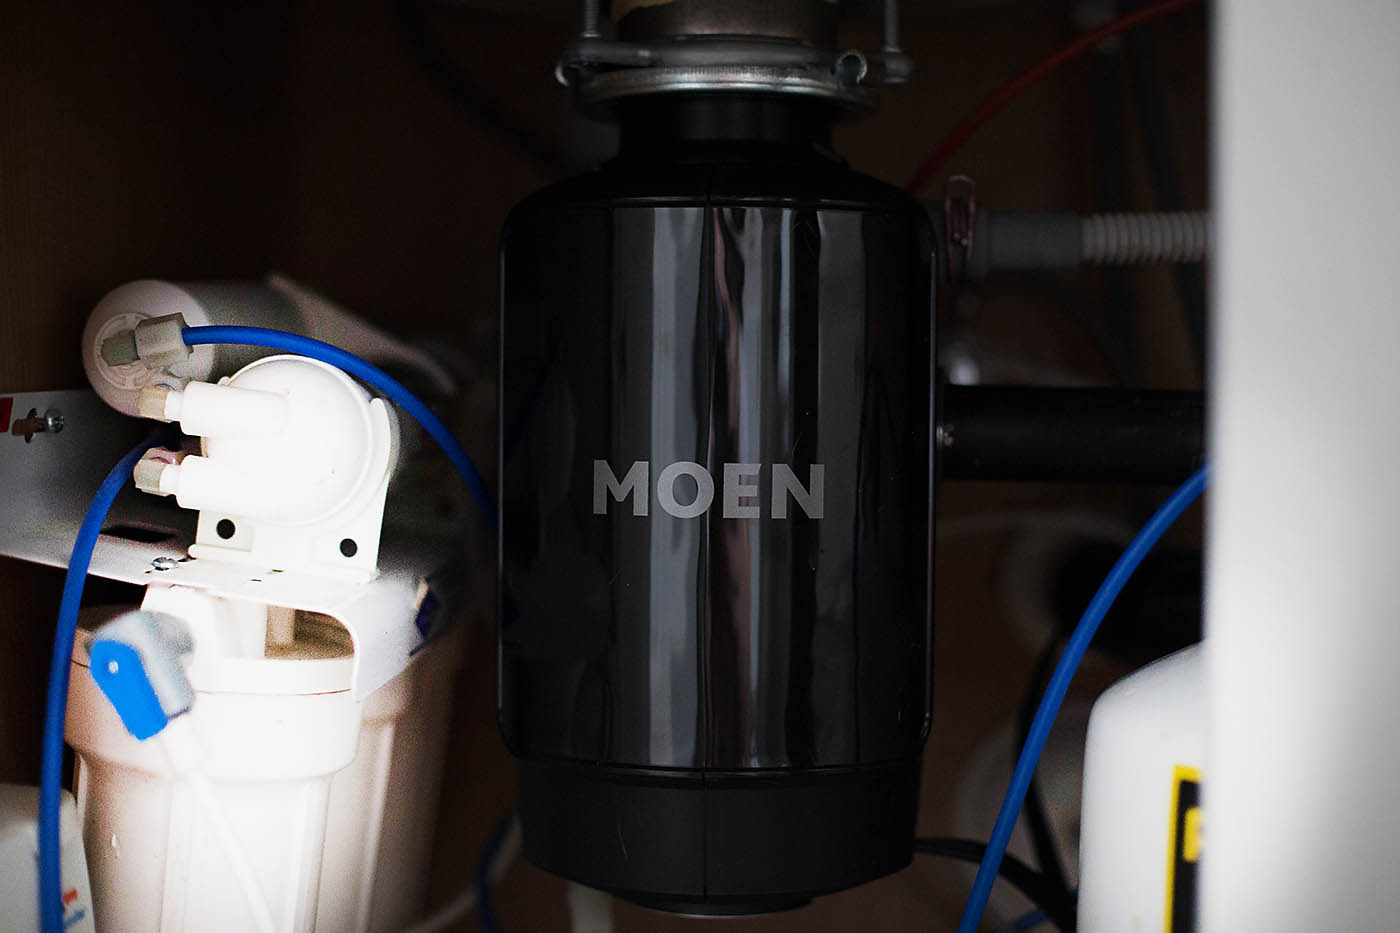 Moen disposal